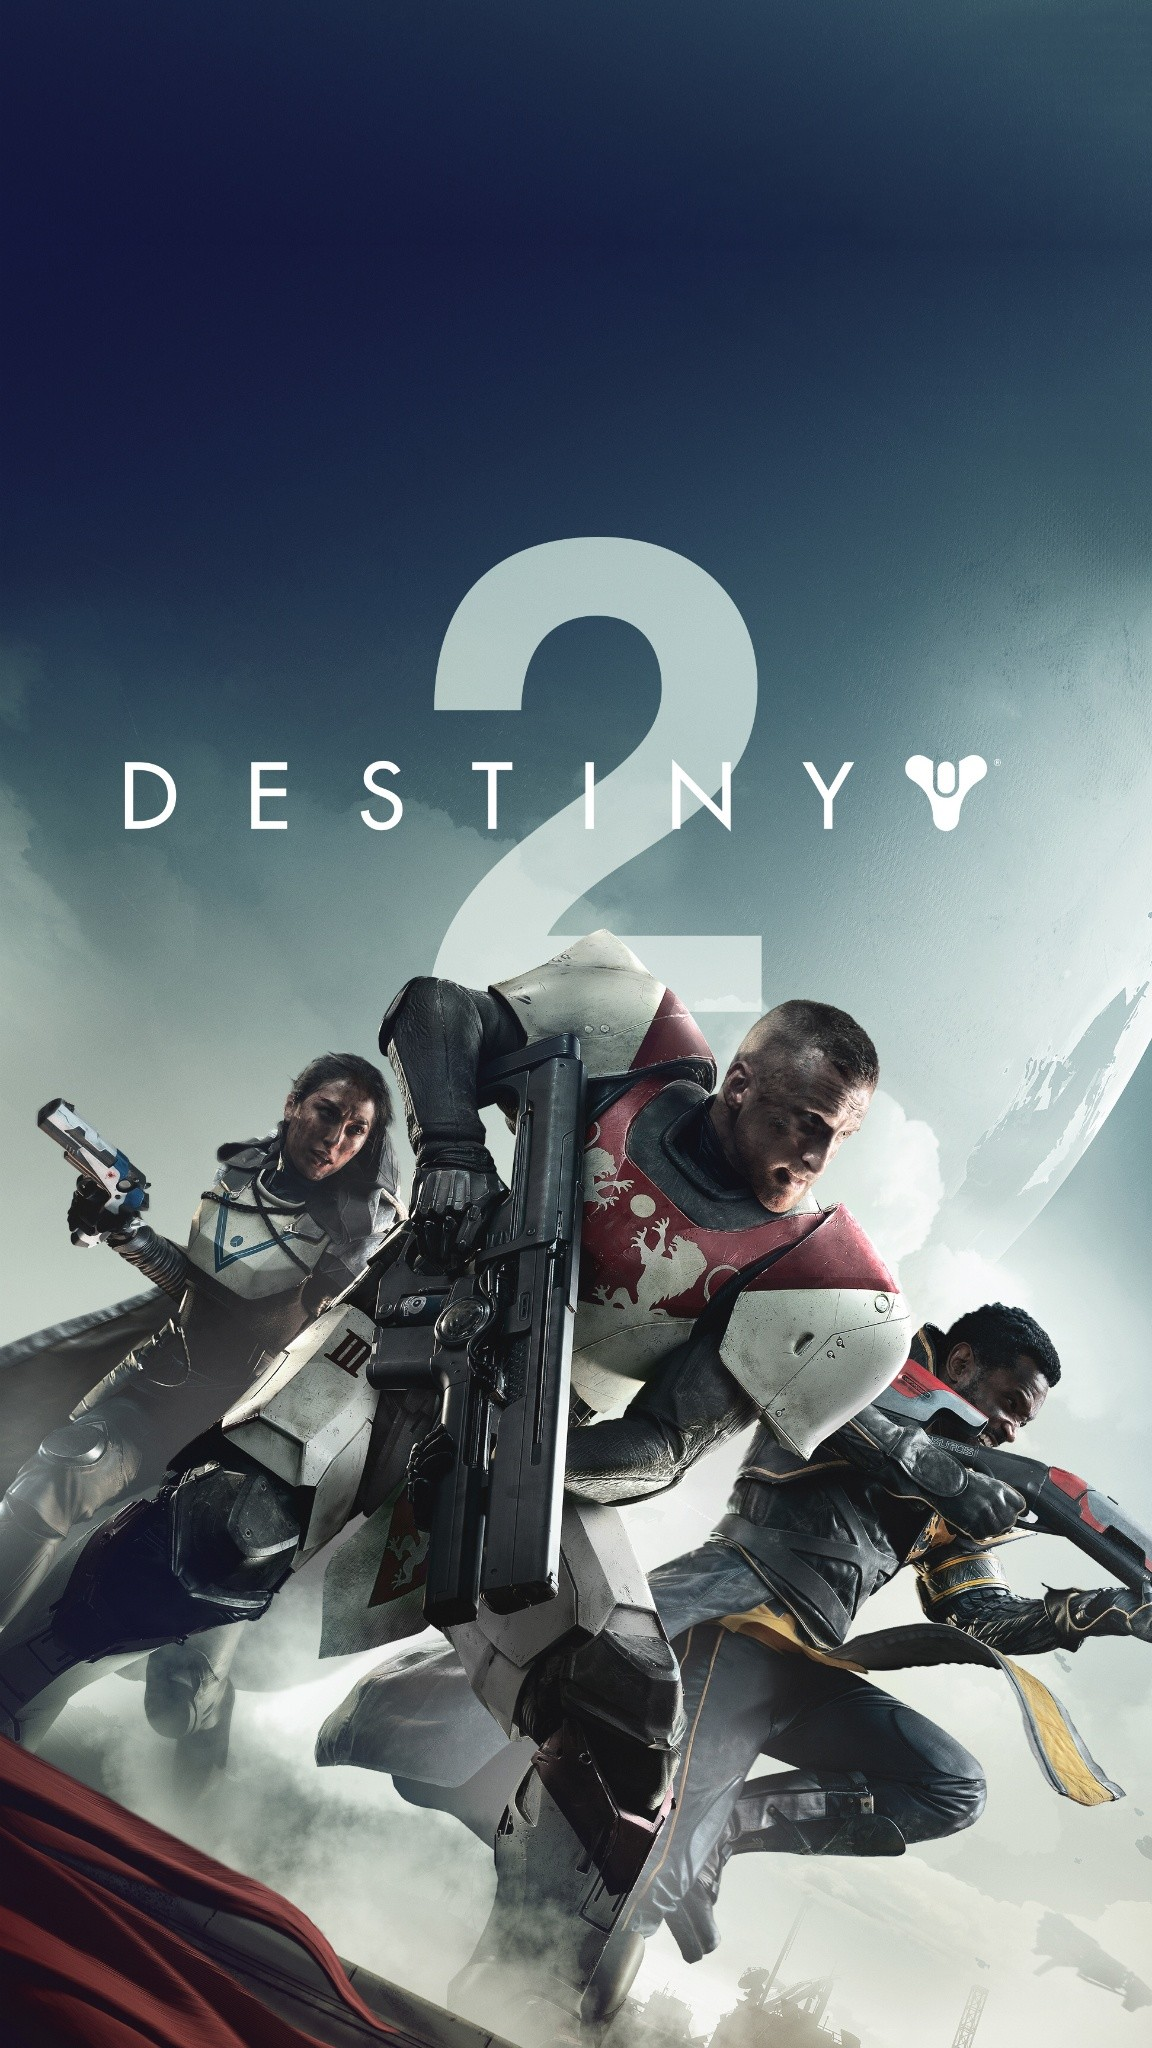 Imgur Iphone Wallpaper Destiny Iphone Wallpapers Hd 76 Images